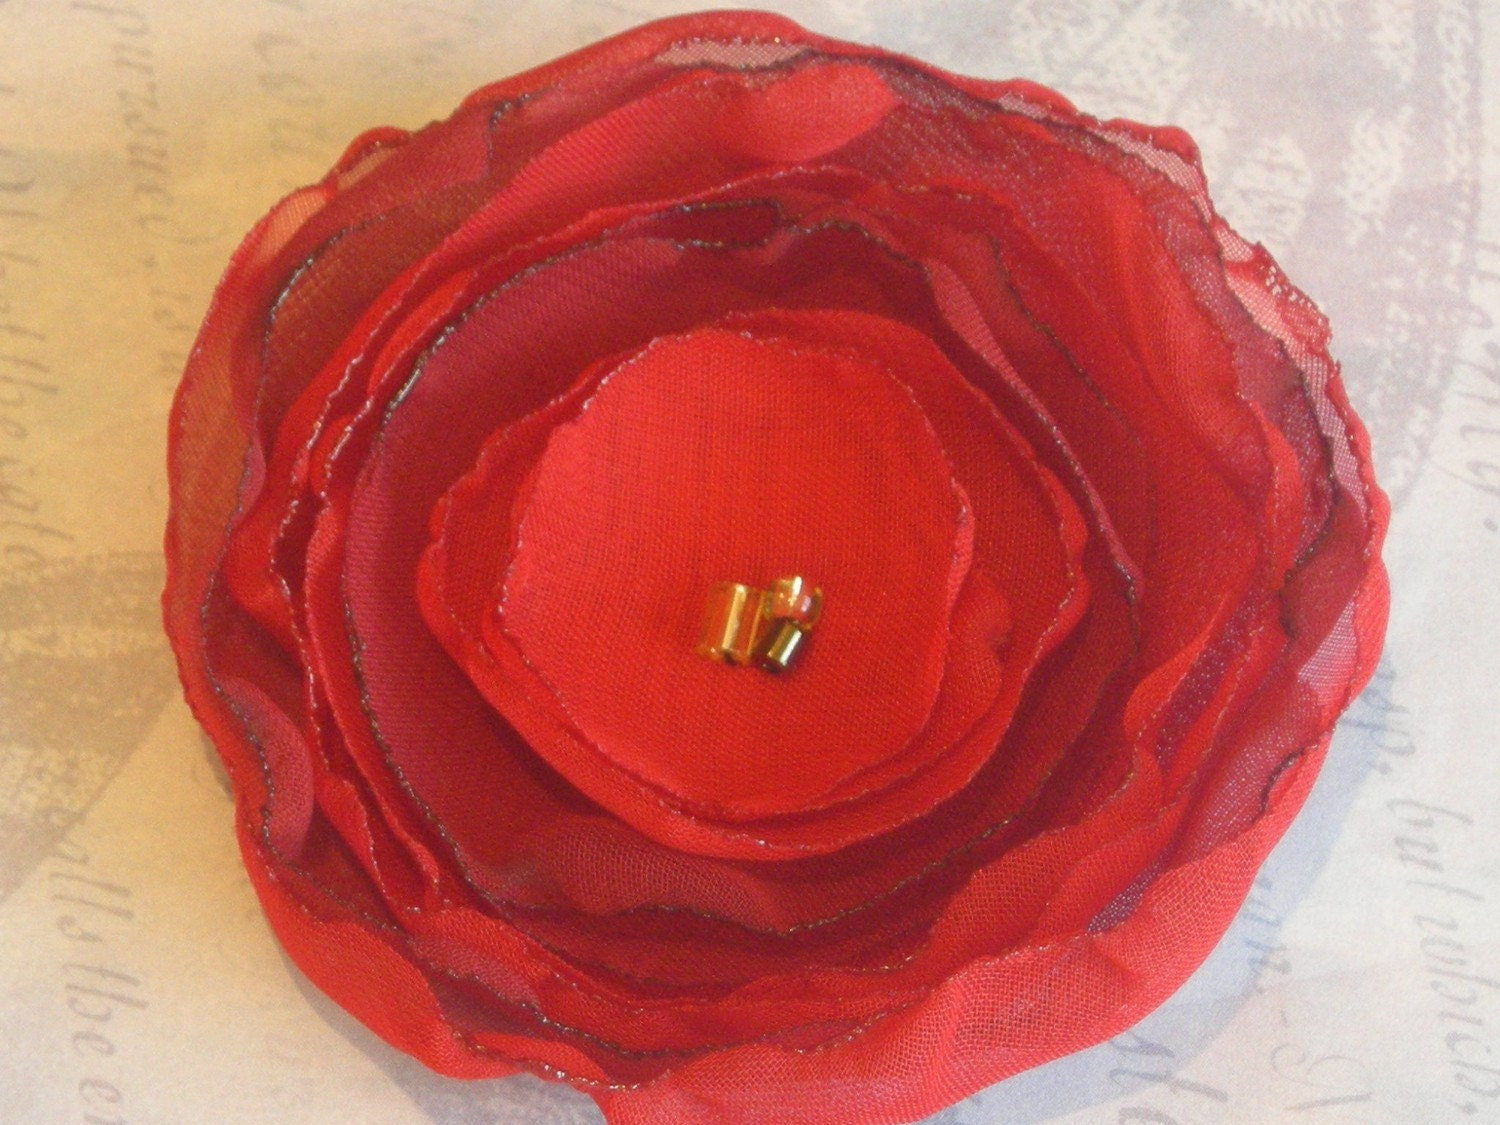 Red rose - chiffon flower clip or brooch